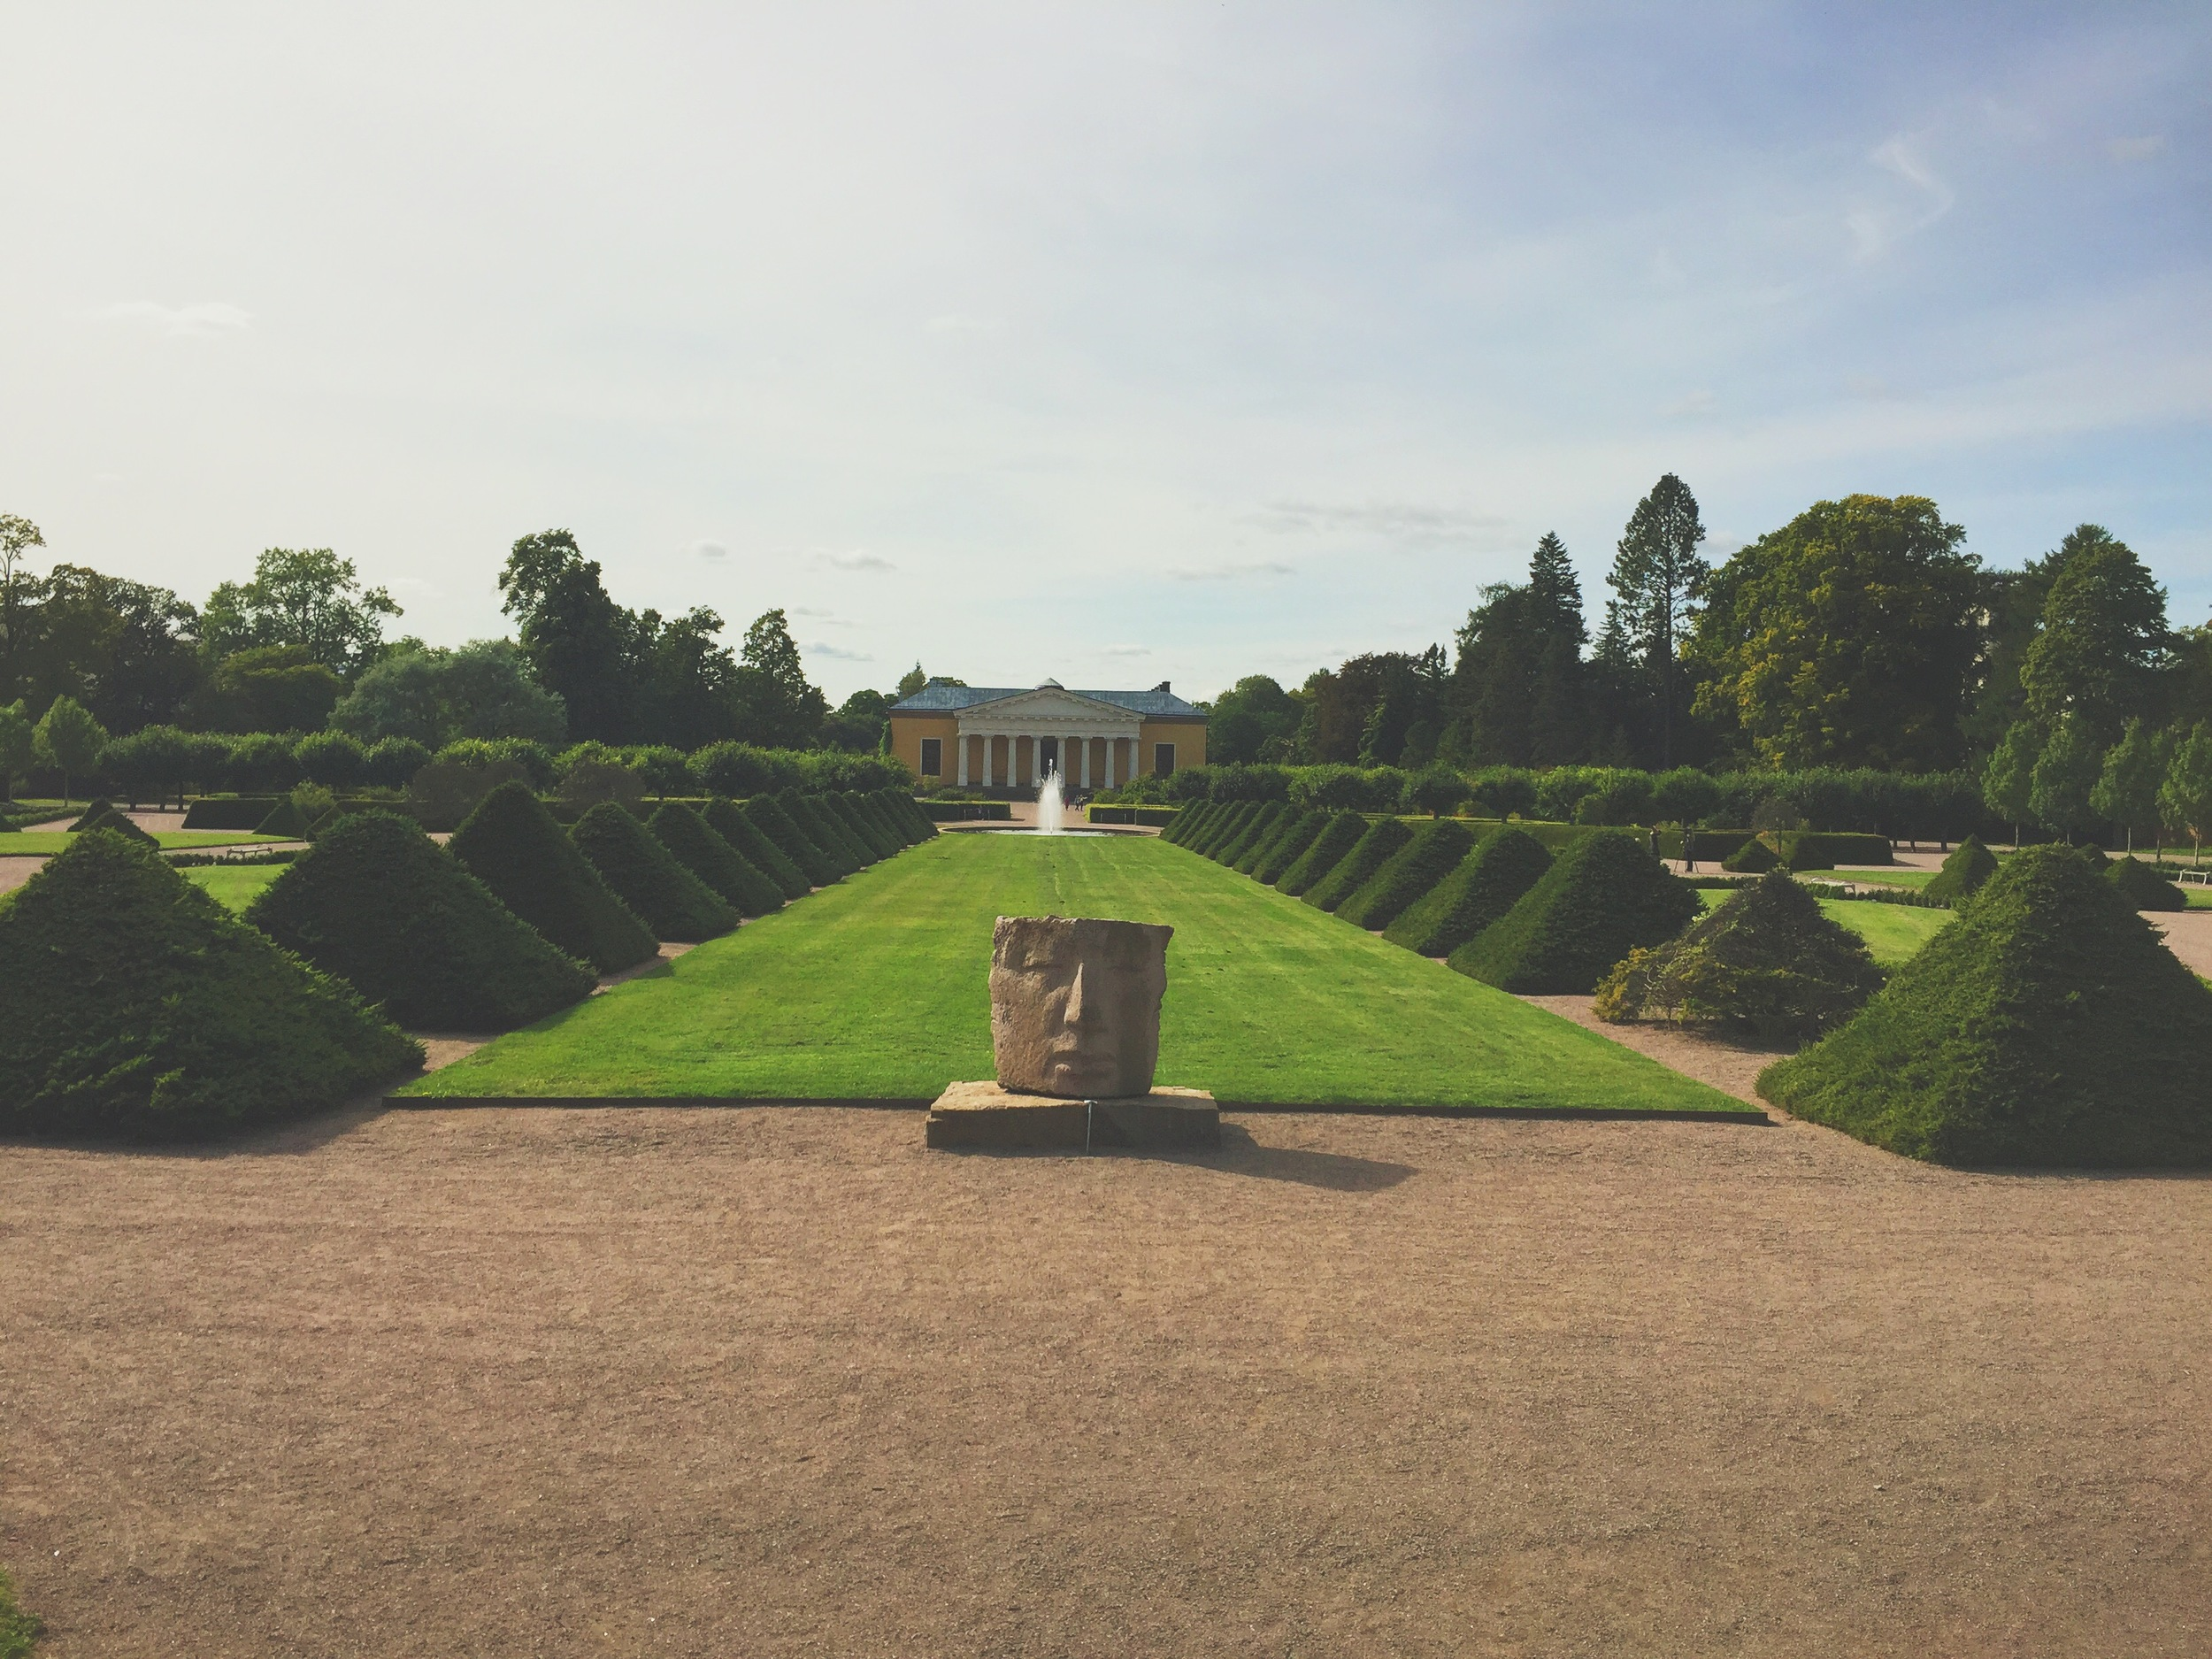 The royal garden, right outside the English Park Campus.